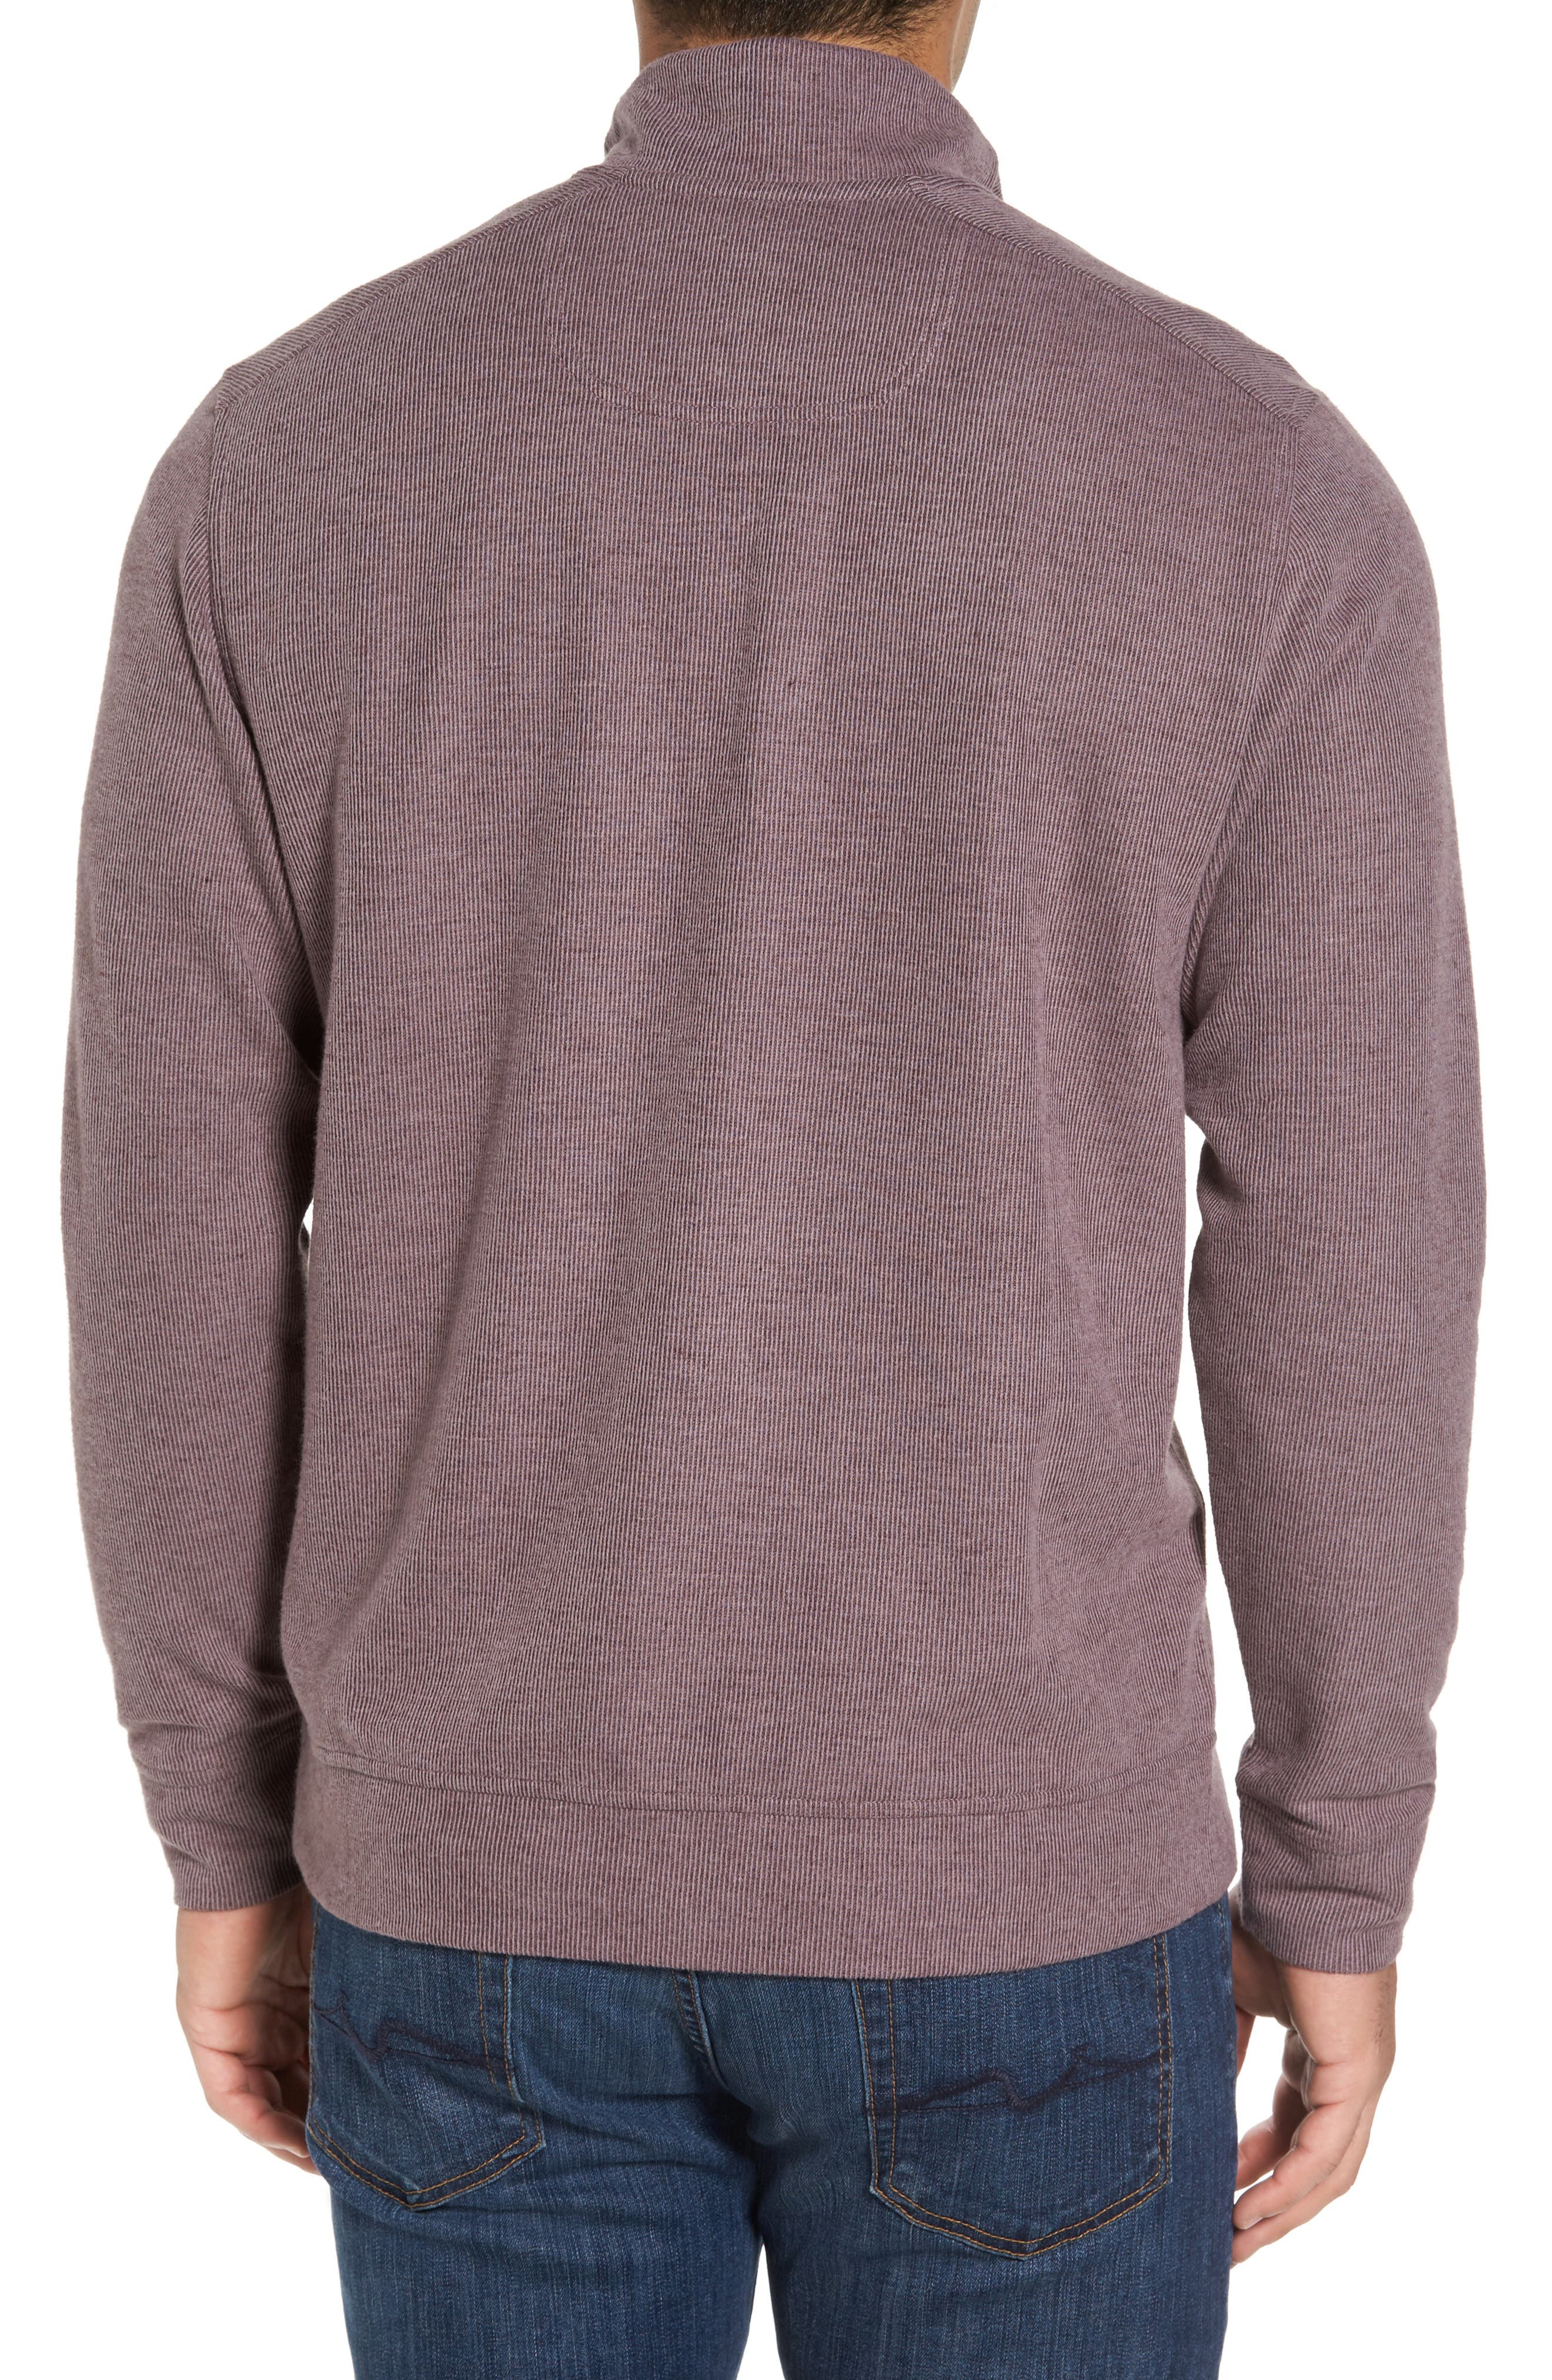 Cold Springs Snap Mock Neck Sweater,                             Alternate thumbnail 12, color,